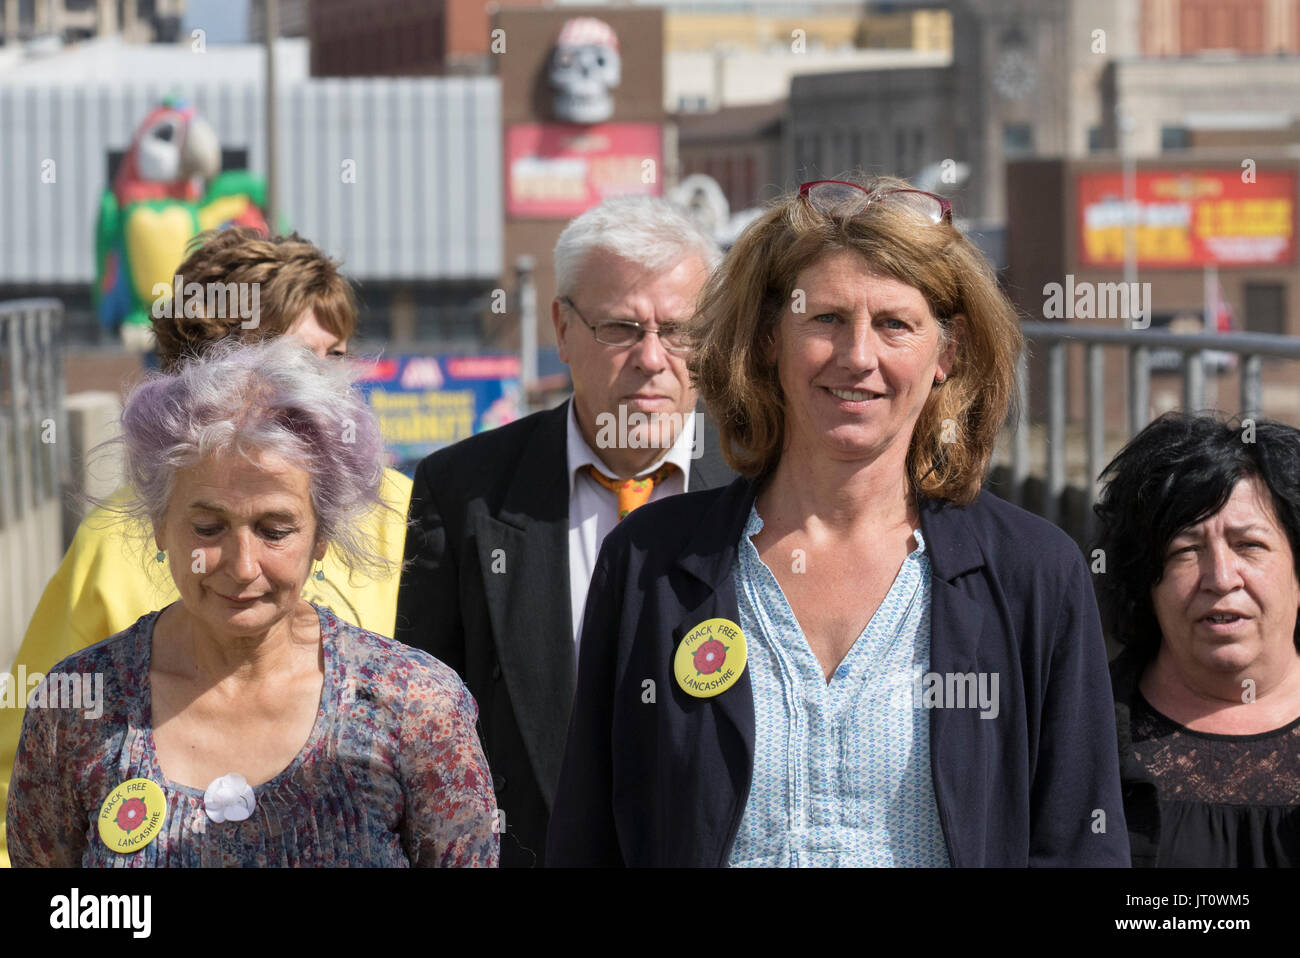 Blackpool, Lancashire, UK. 07th Aug, 2017. Green Party Councillor Gina Dowding arrives at the Magistrates County Court supported by co-defendants Nicholas Sheldrick, and Julie Brickles (wearing black) who attend in court today for taking action to halt operations at Cuadrilla's controversial fracking site for shale gas at Preston New Road. The charges came after 13 Lancashire residents, including three councillors, took direct lock-on action in an ongoing bid to prevent shale gas extraction by exploration company Cuadrilla. Credit;MediaWorldImages/AlamyLiveNews. - Stock Image